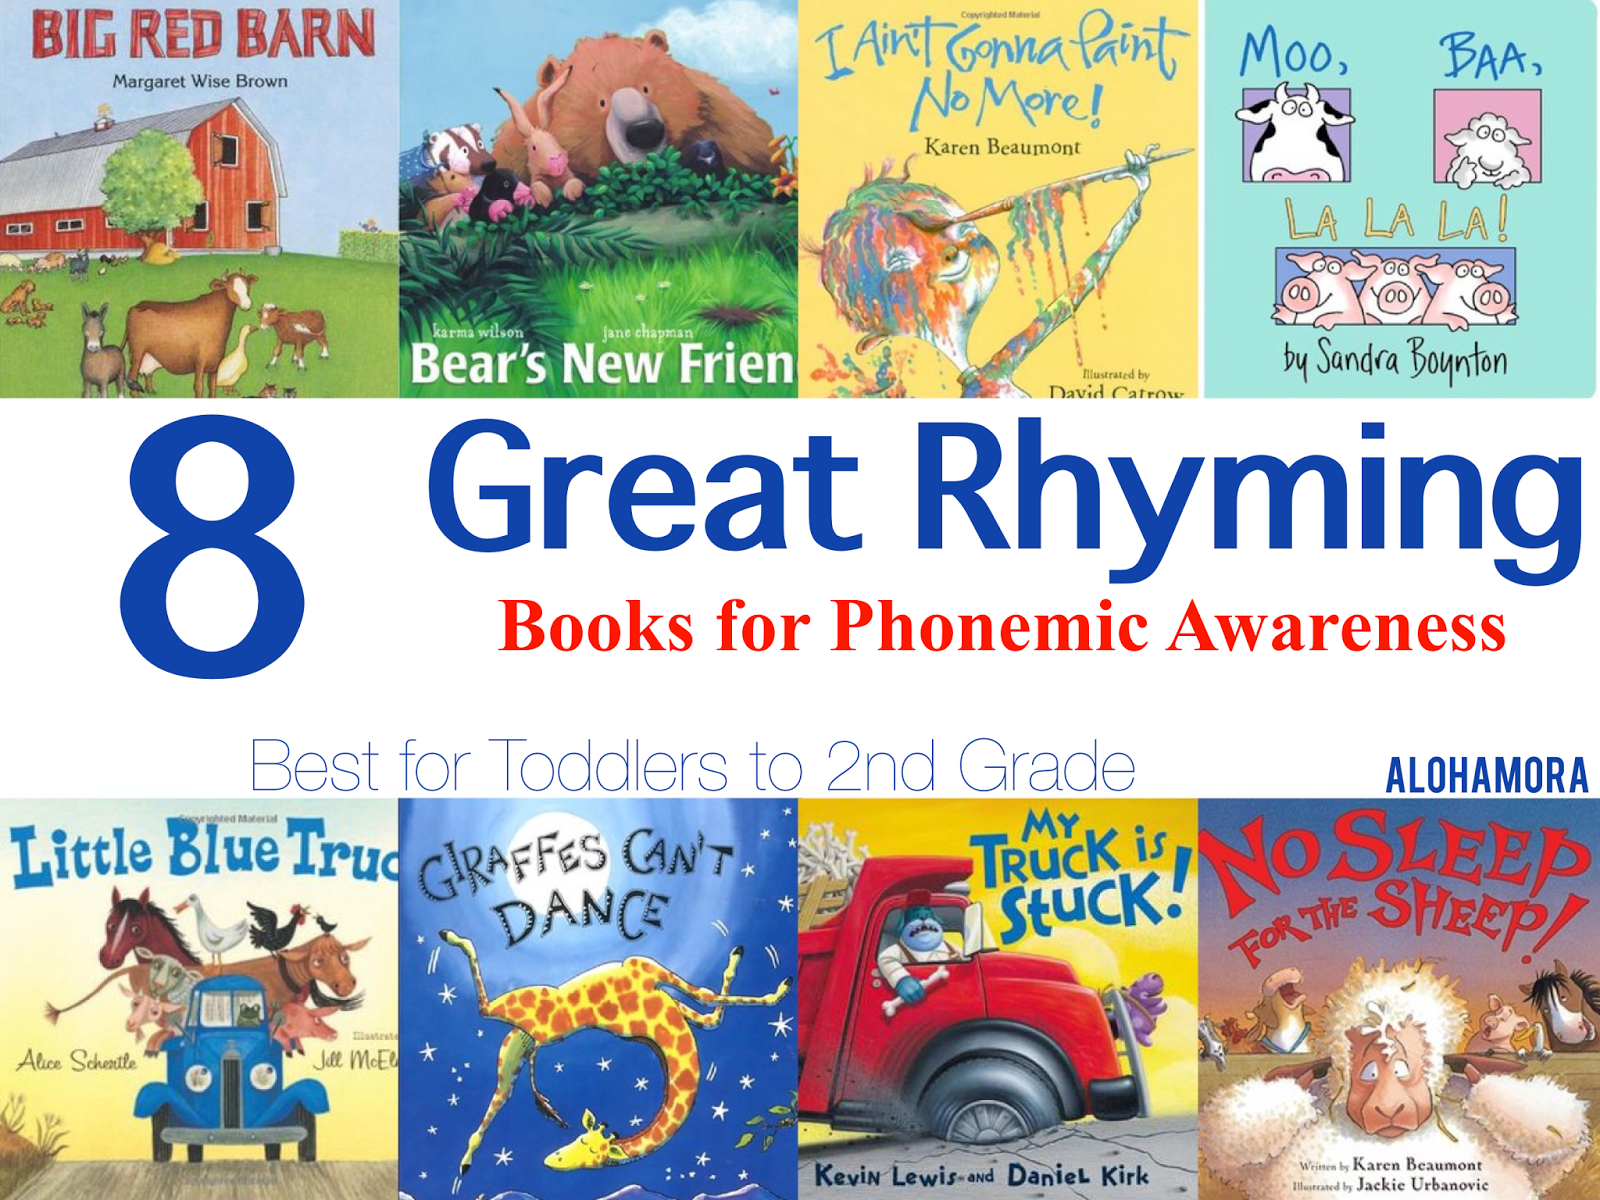 Alohamora Open A Book 8 Great Rhyming Books For Phonemic